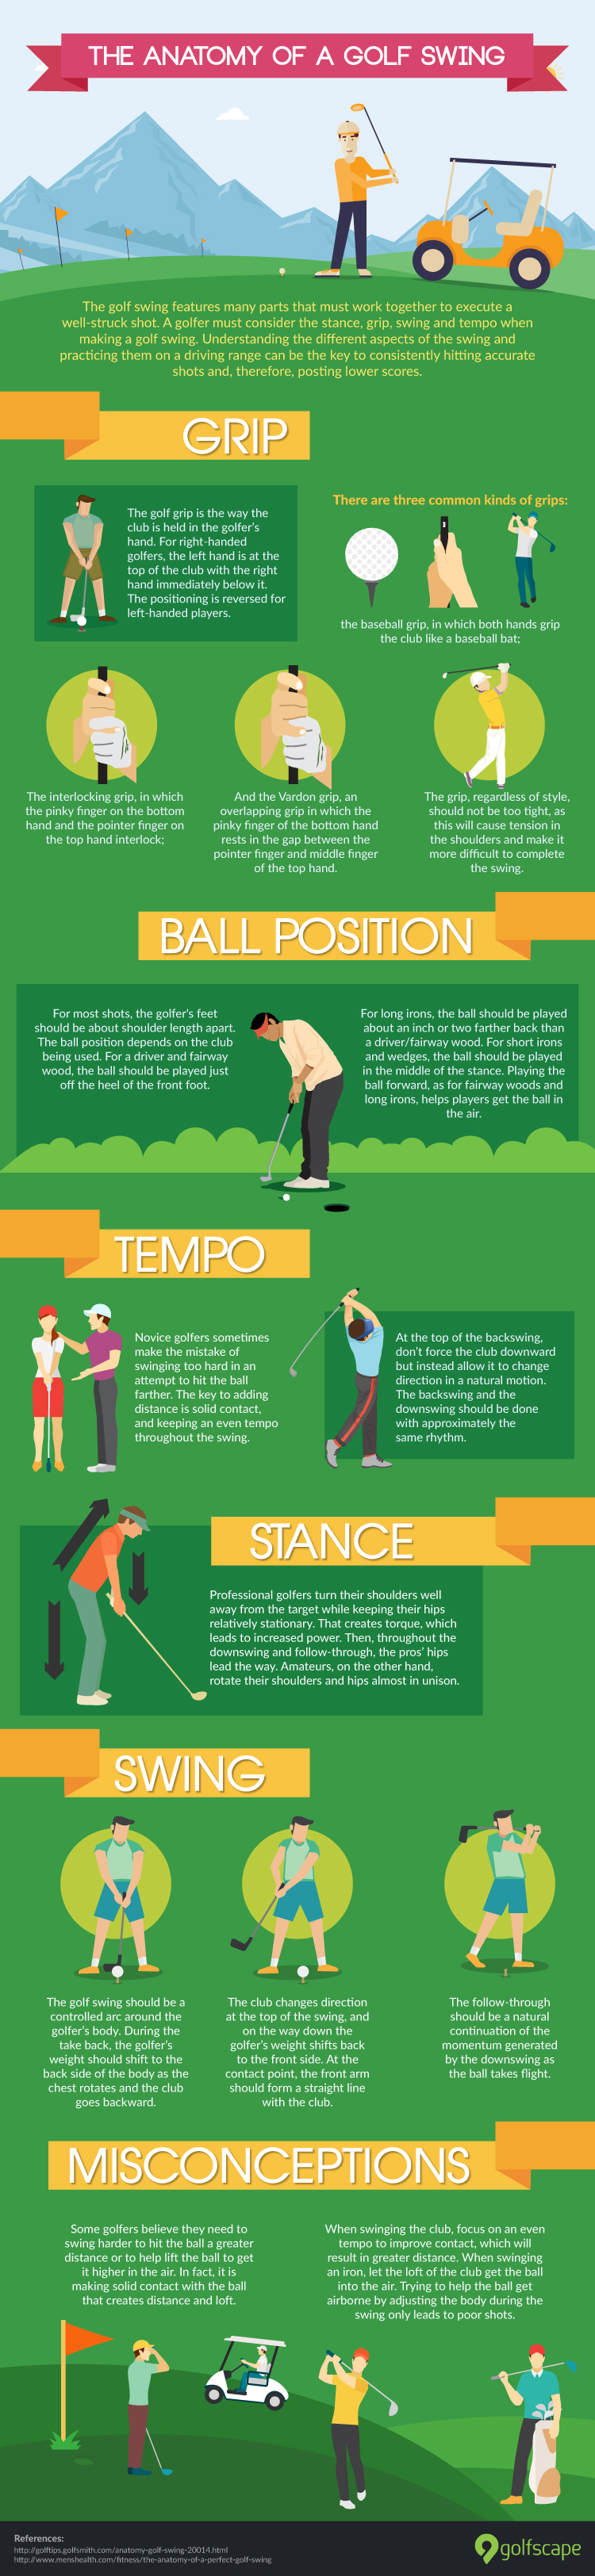 The anotomy of a golf swing infographic